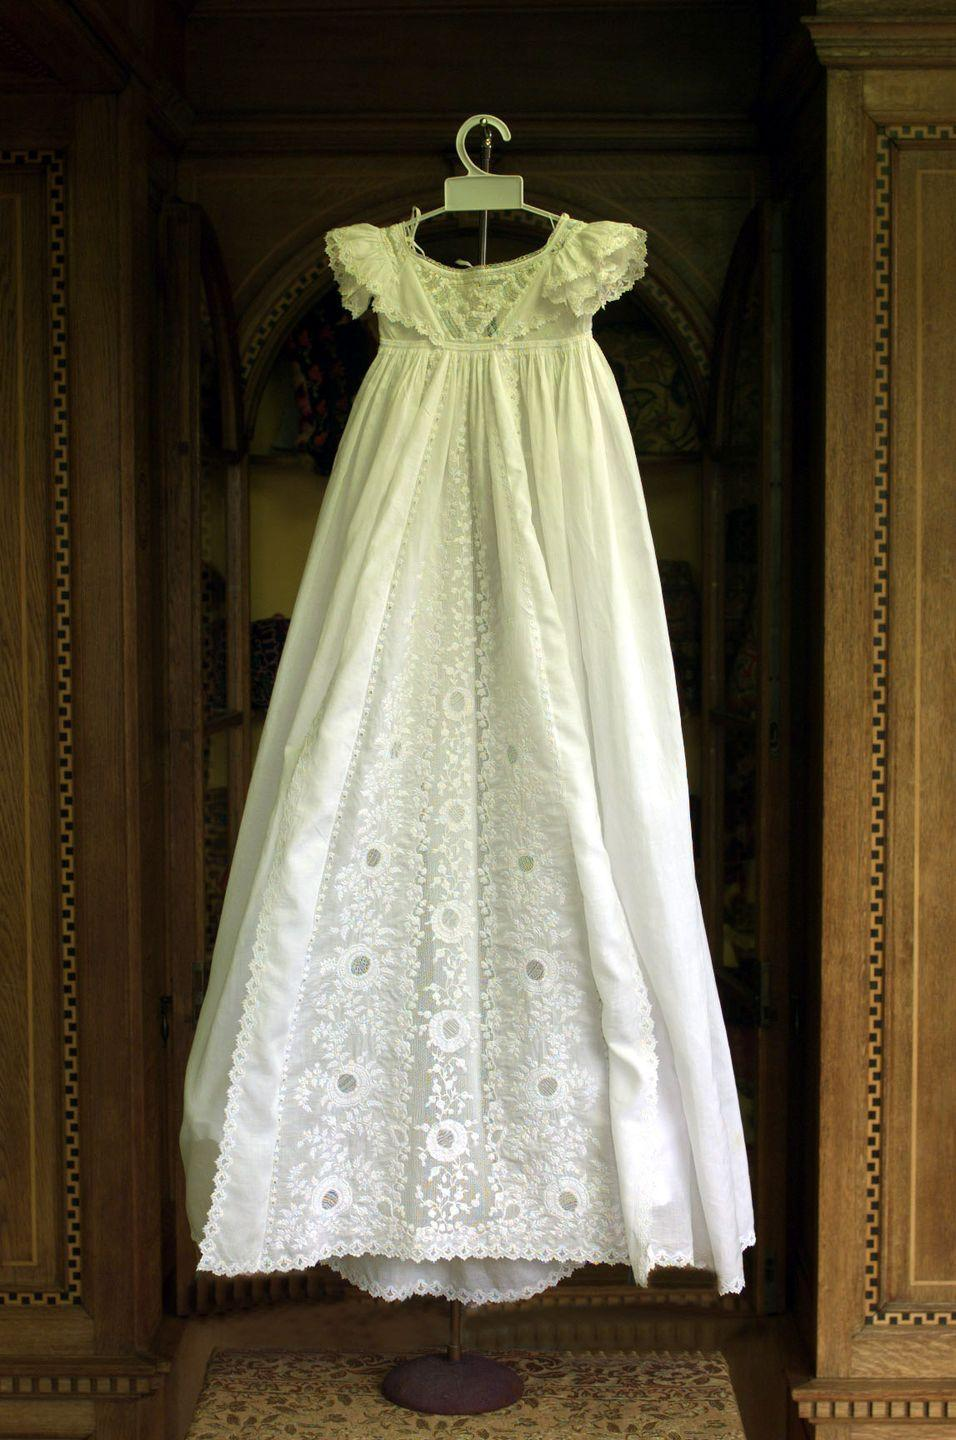 <p>Diana wore this 19th century gown for her christening. It was displayed in summer 1999 at Althorp, the Spencer family's estate near Northampton.<br></p>